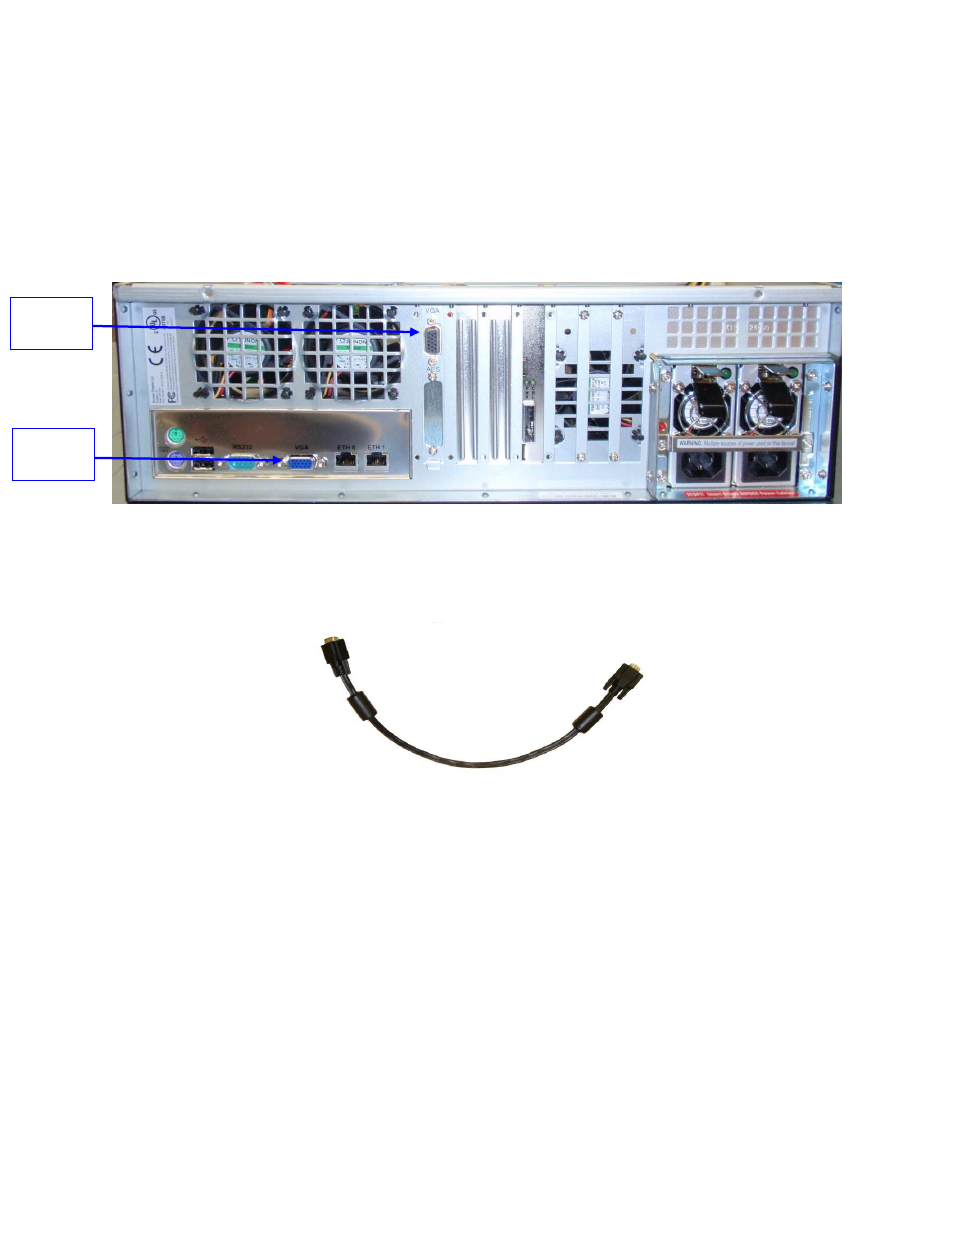 Rear Panel Connectors Vga Cable Connection For Server Lcd Screen Wiring Usage Pci Express Card On Doremi Showvault Imb User Manual Page 21 146